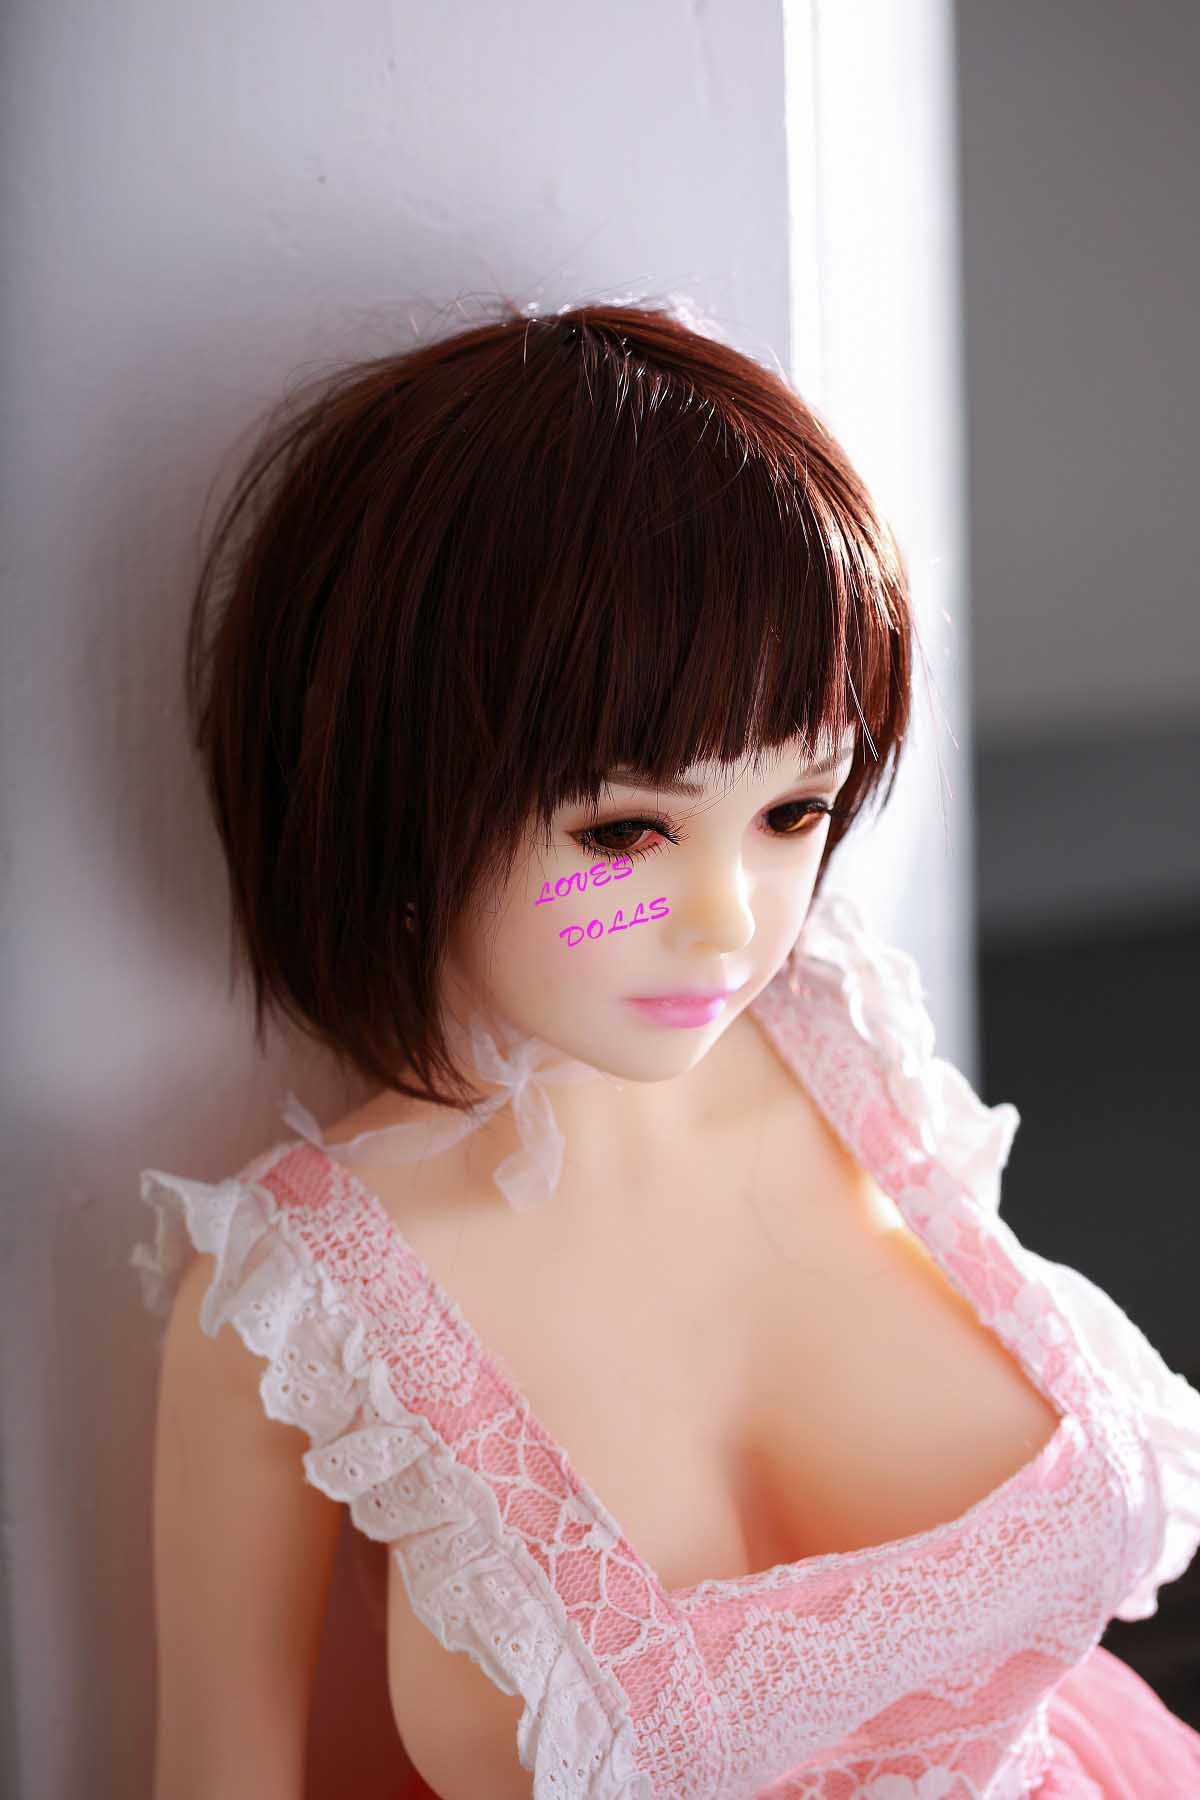 100cm(3.28ft)Asian Chubby Sex Doll Soft White Body Huge Tits Pink Nipples Big Ass Japanese Student Girl With White Tender Skin Wear Sexy Underwear True To Nature Pink Pussy Vagina Anal Oral Love Doll YW-105